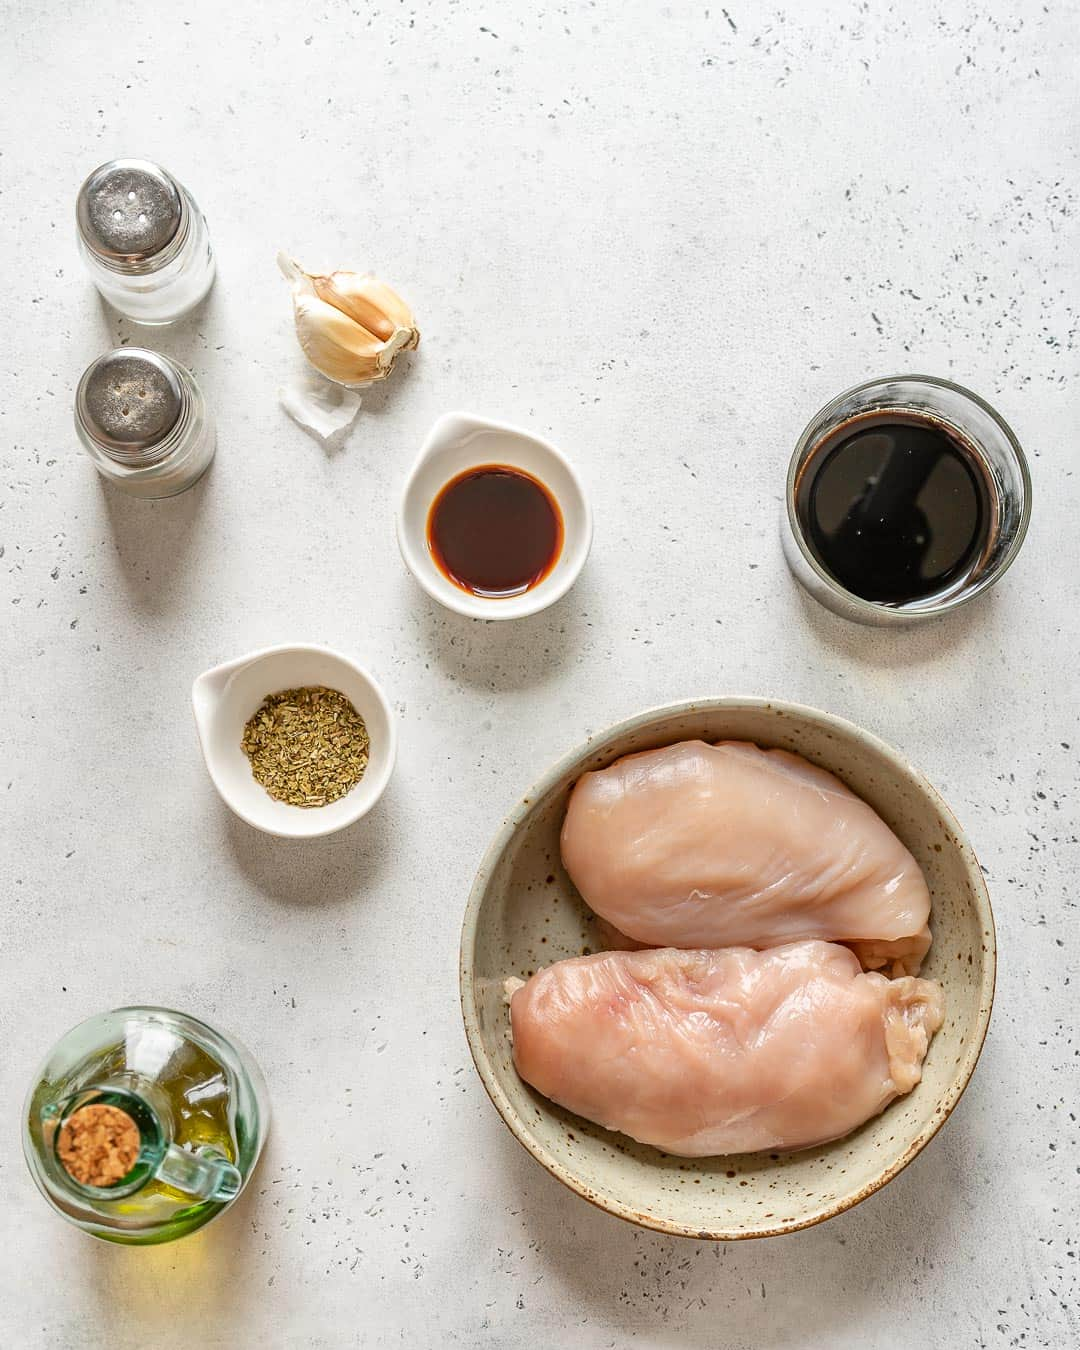 ingredients for Balsamic Chicken Breast